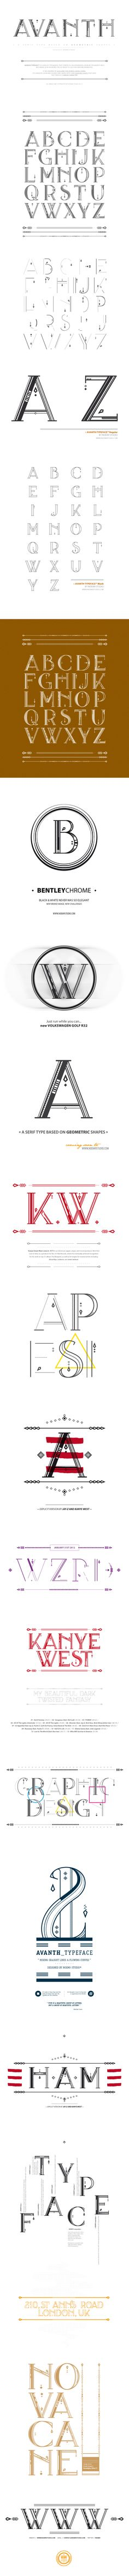 AVANTH typeface by Noem9 Jose Garrido, via Behance. Love the details.